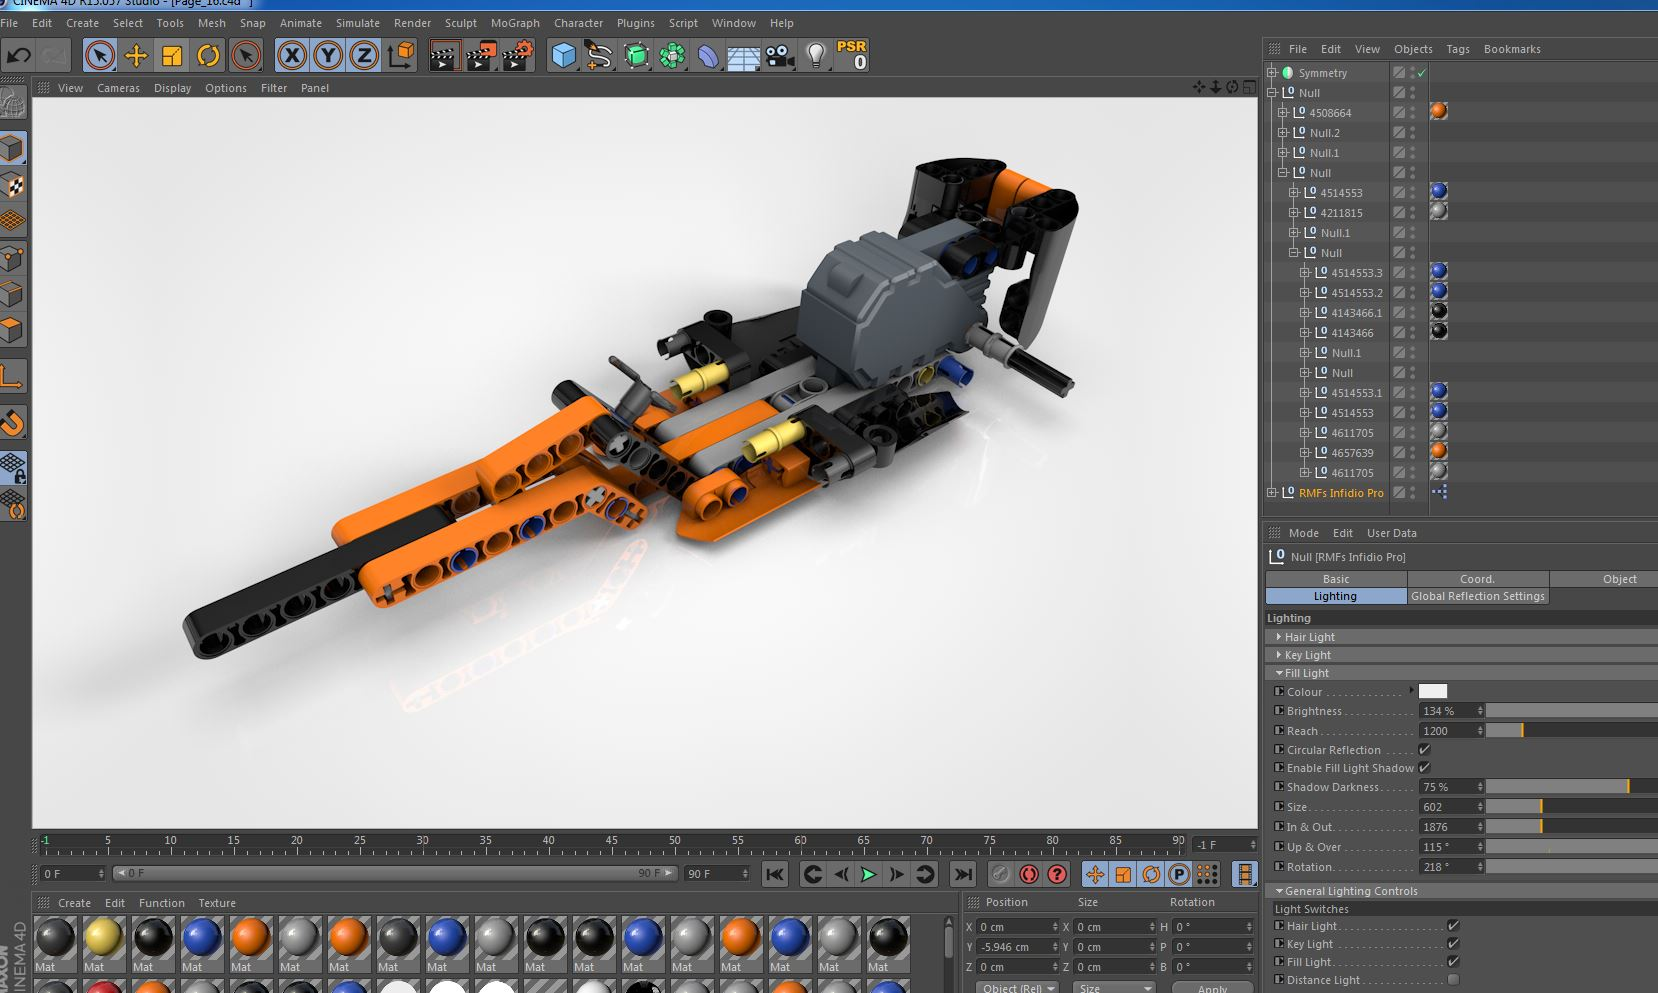 Lego Technic - Infidio Pro - Cinema 4D Lighting Studio